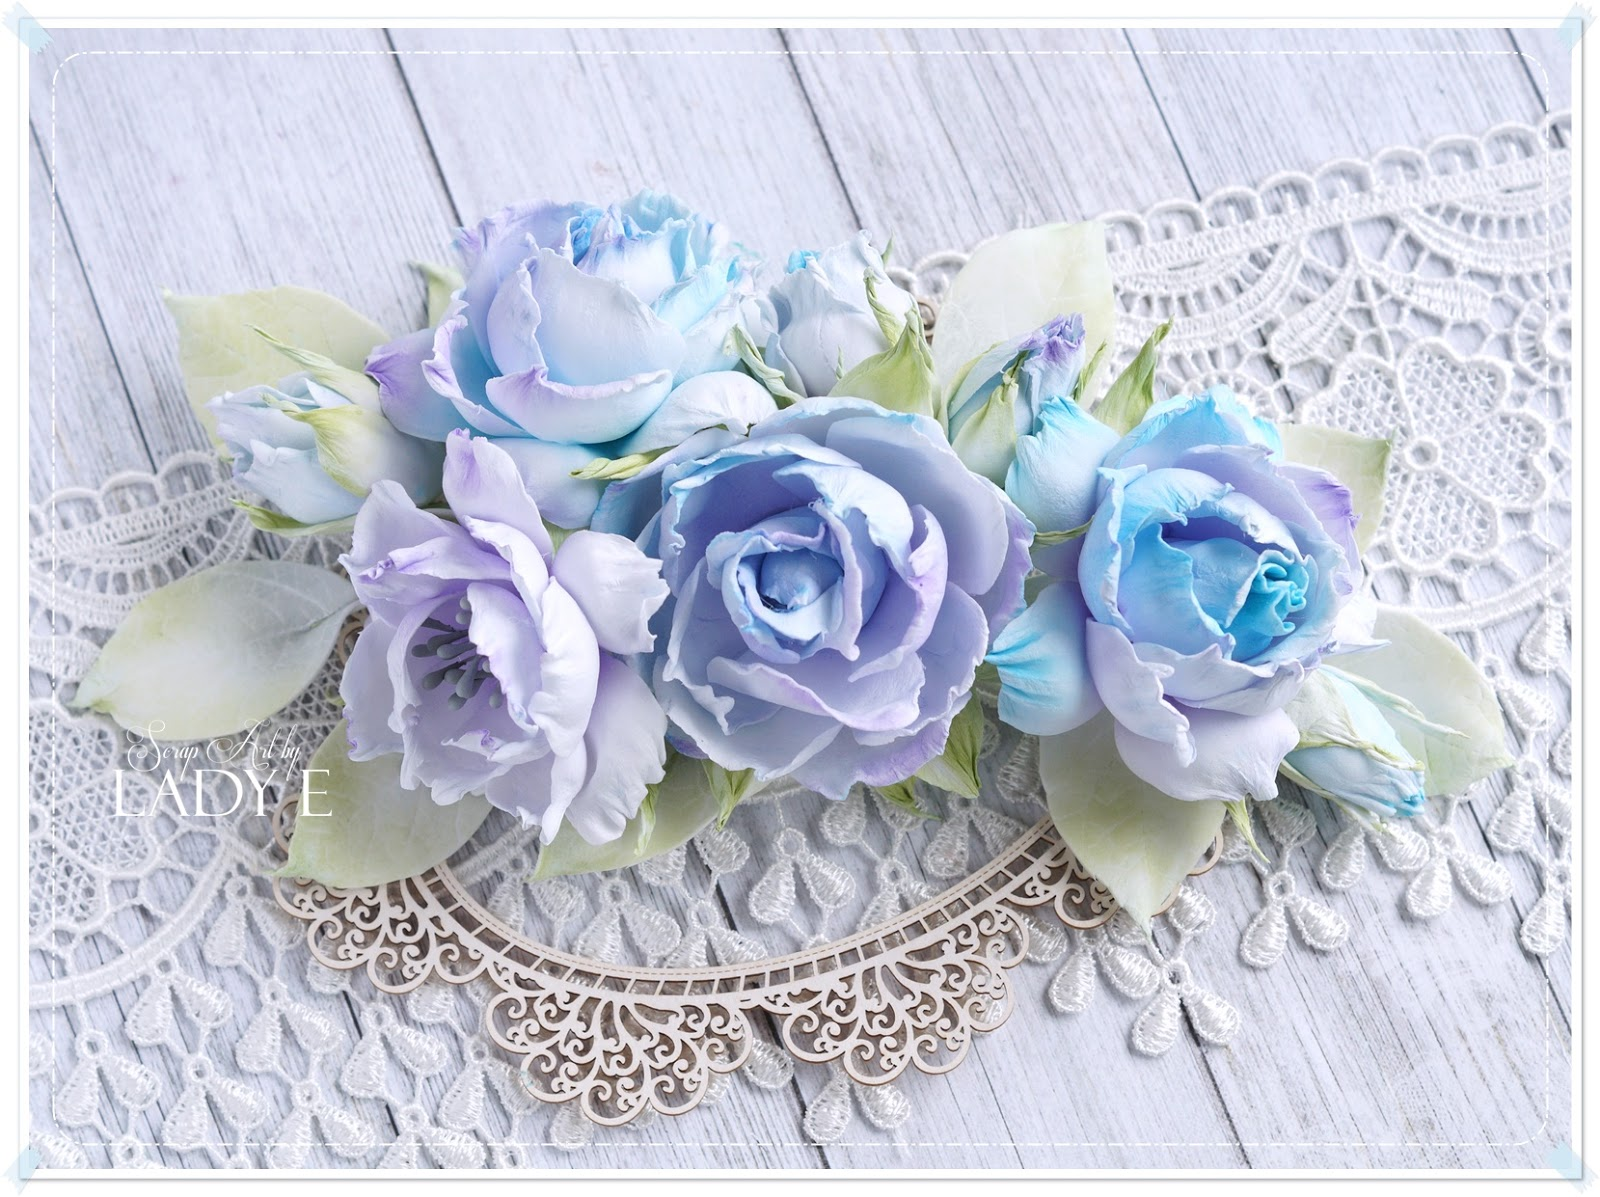 Shabby Chic Silk Foam Flowers Scrap Art By Lady E